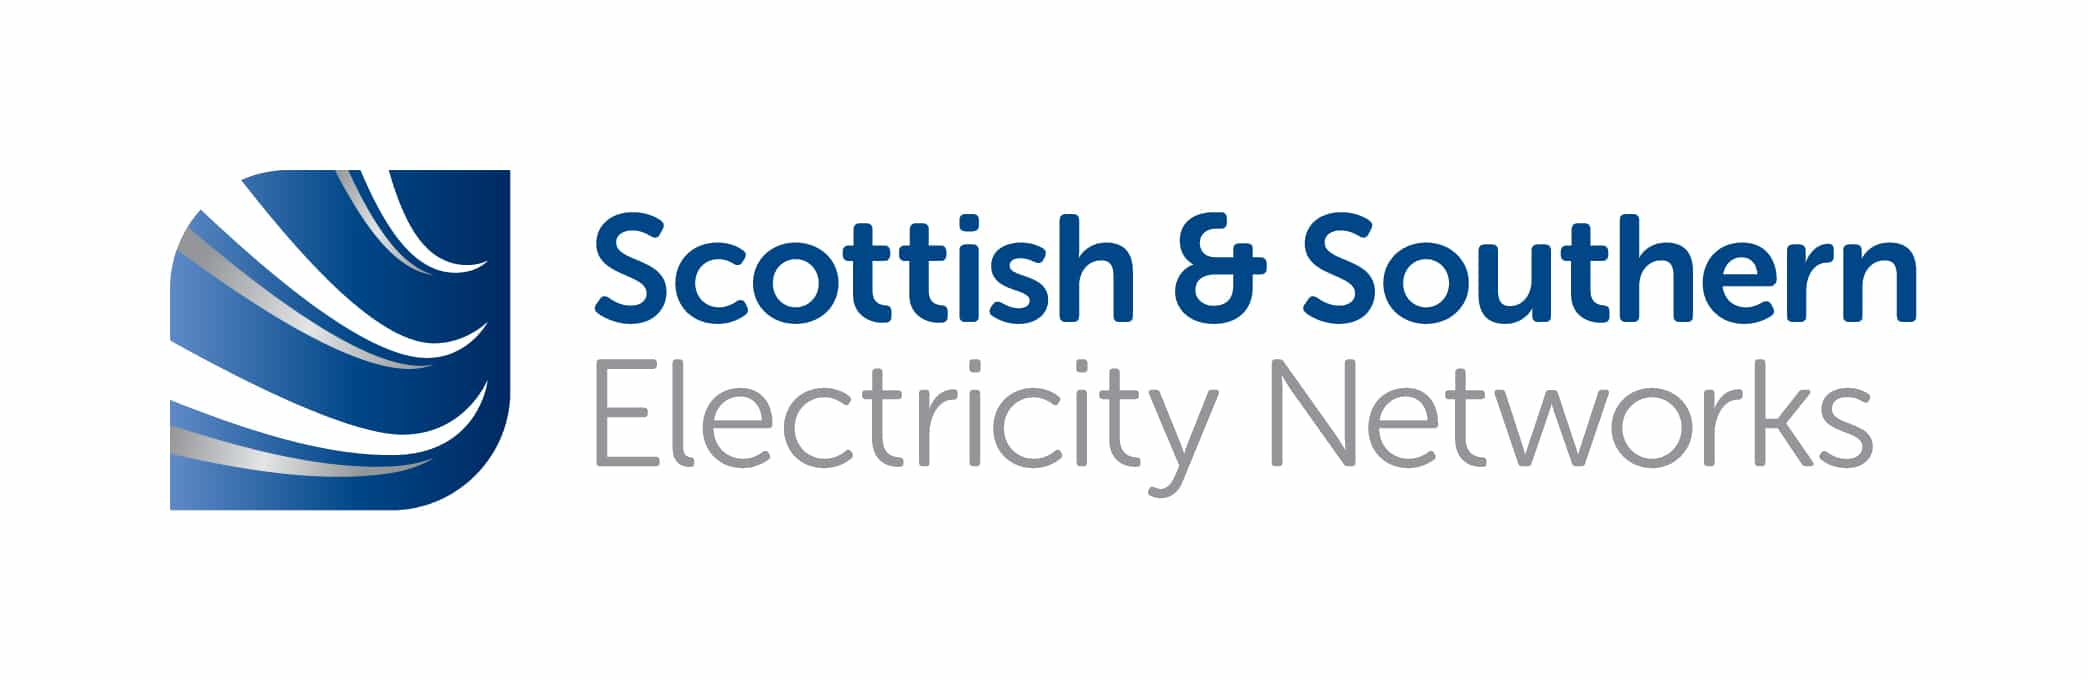 Scottish and Southern Energy Networks